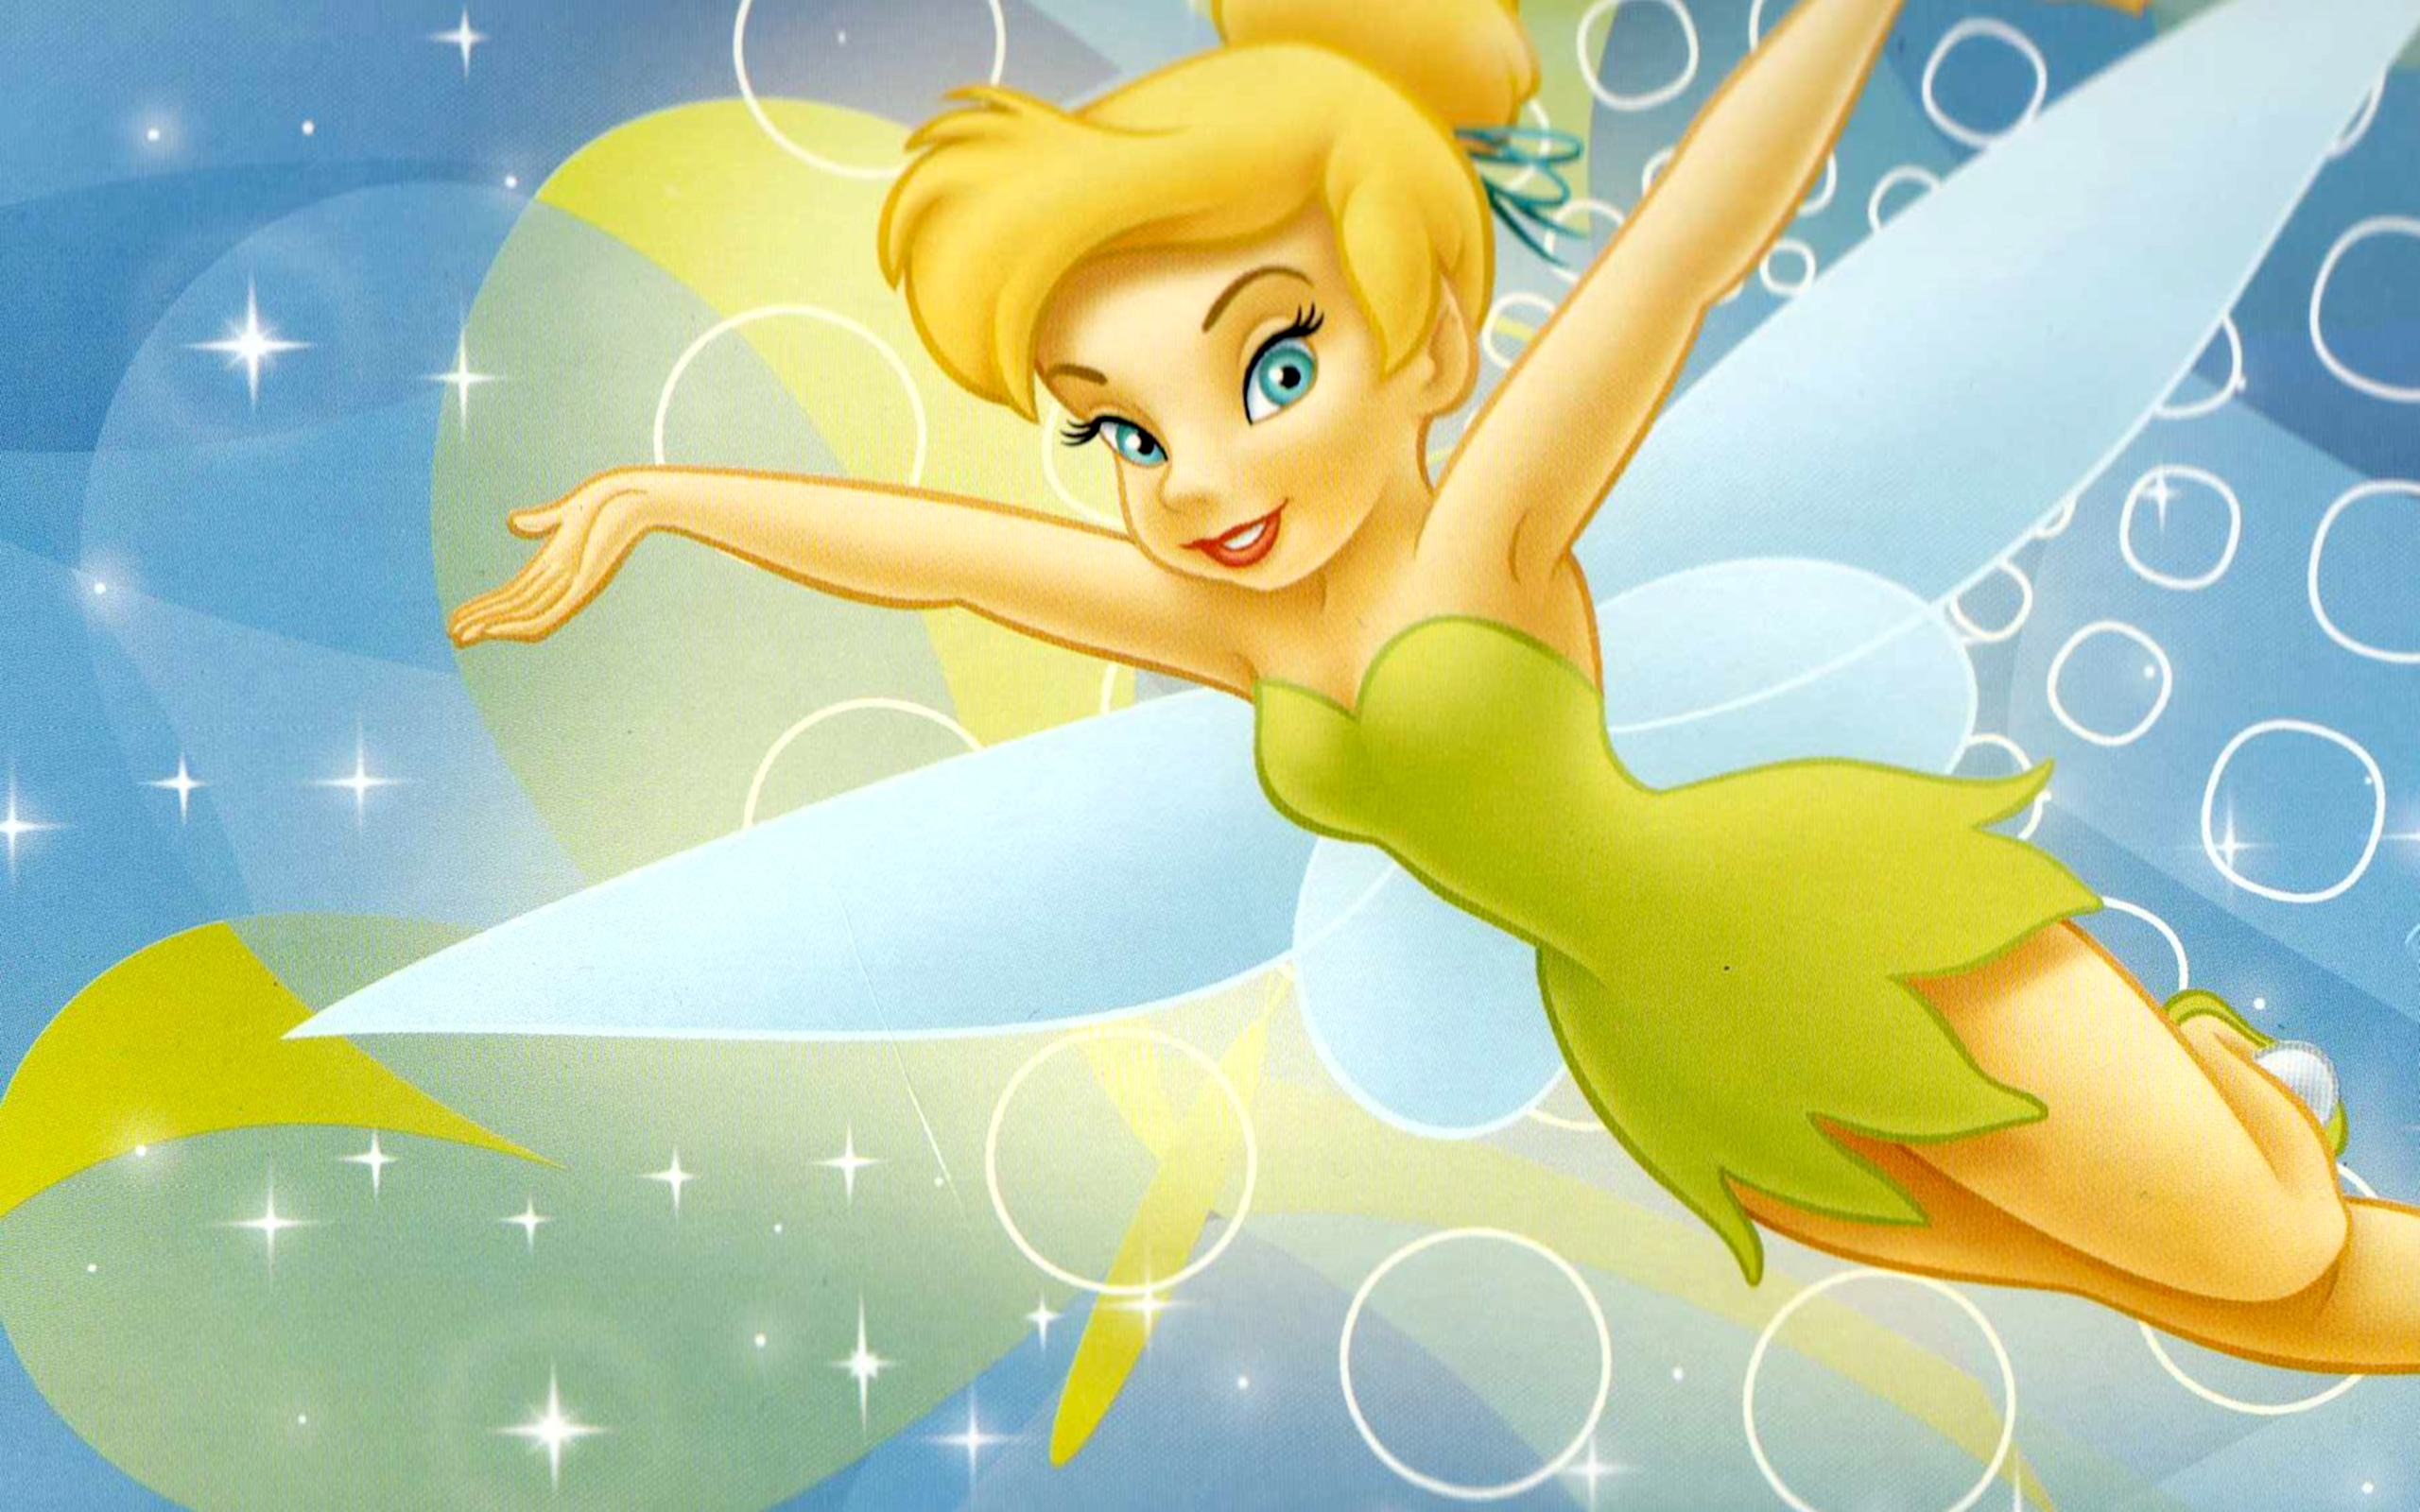 Tinker Bell Backgrounds, Compatible - PC, Mobile, Gadgets| 2560x1600 px